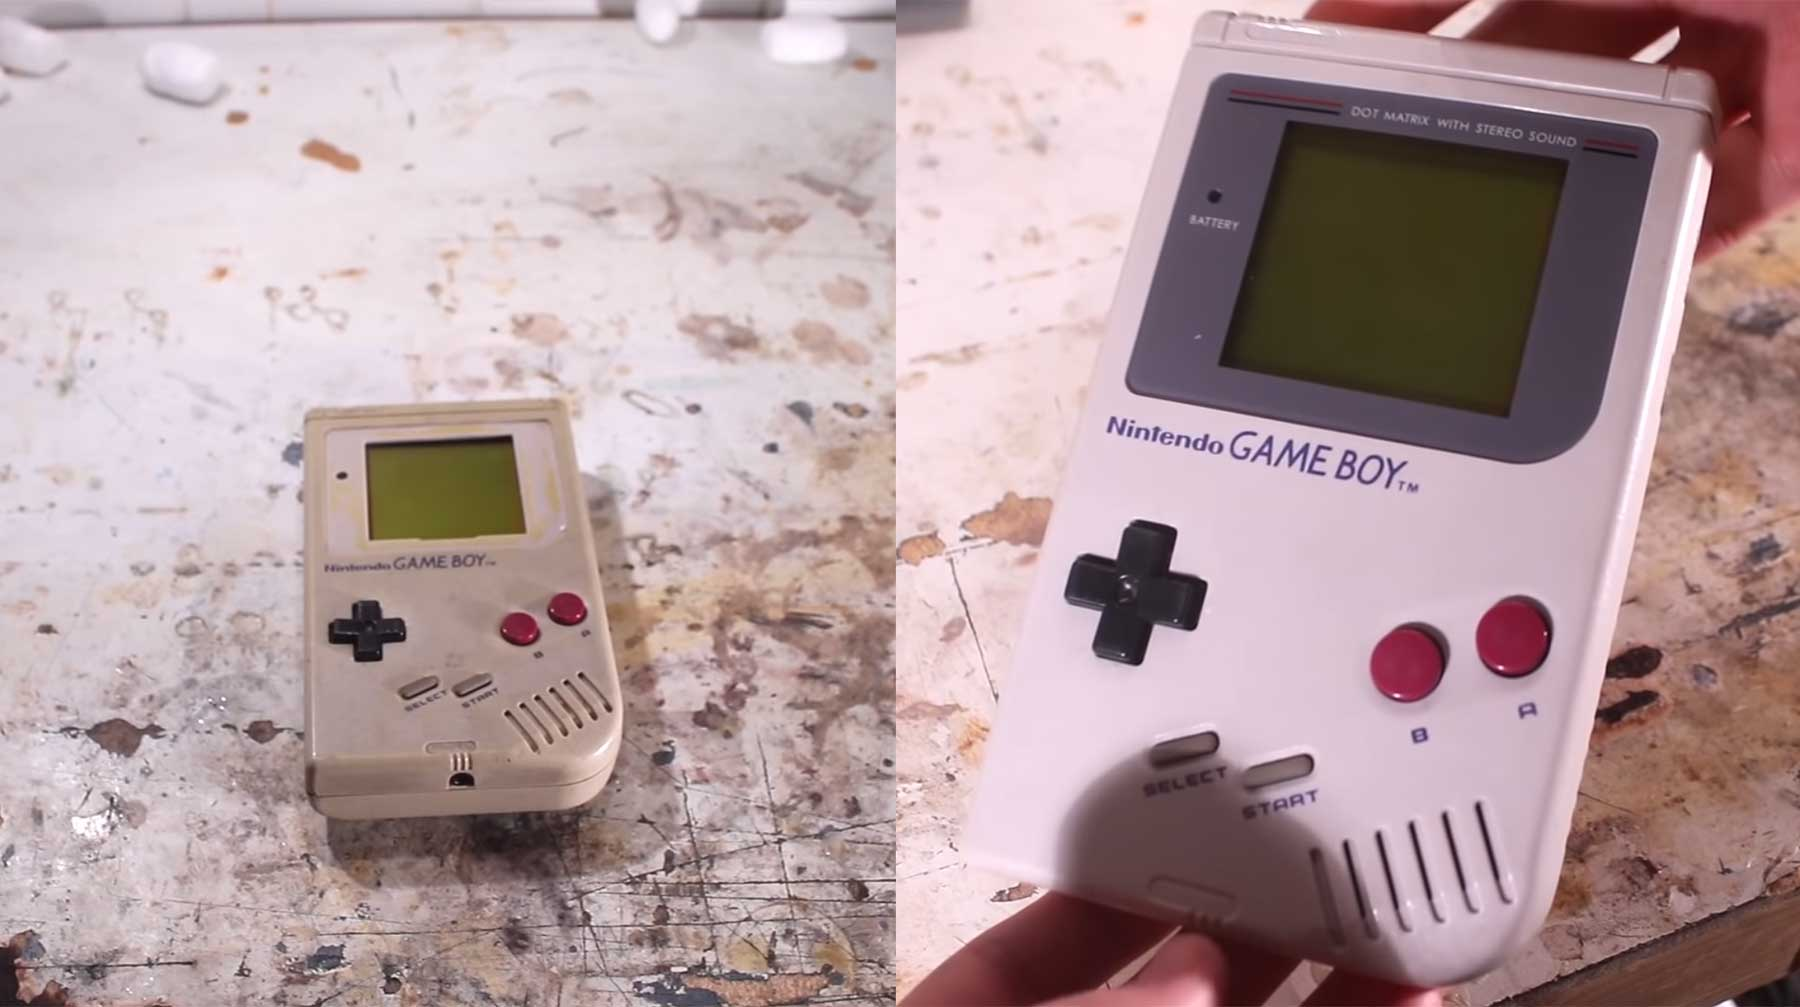 Restauration eines Game Boy